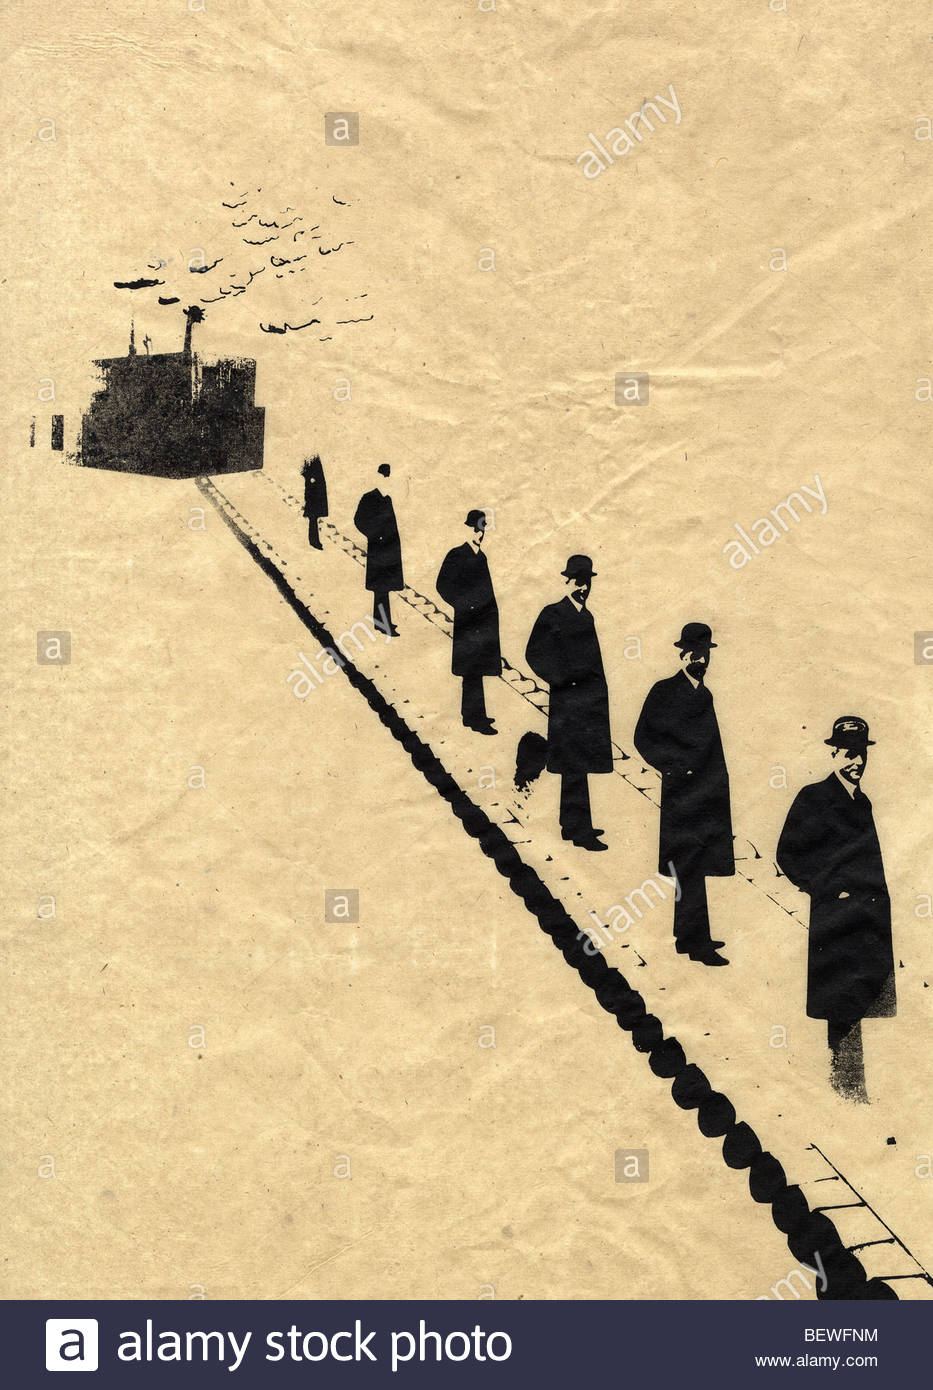 Businessmen in a row on conveyor belt - Stock Image